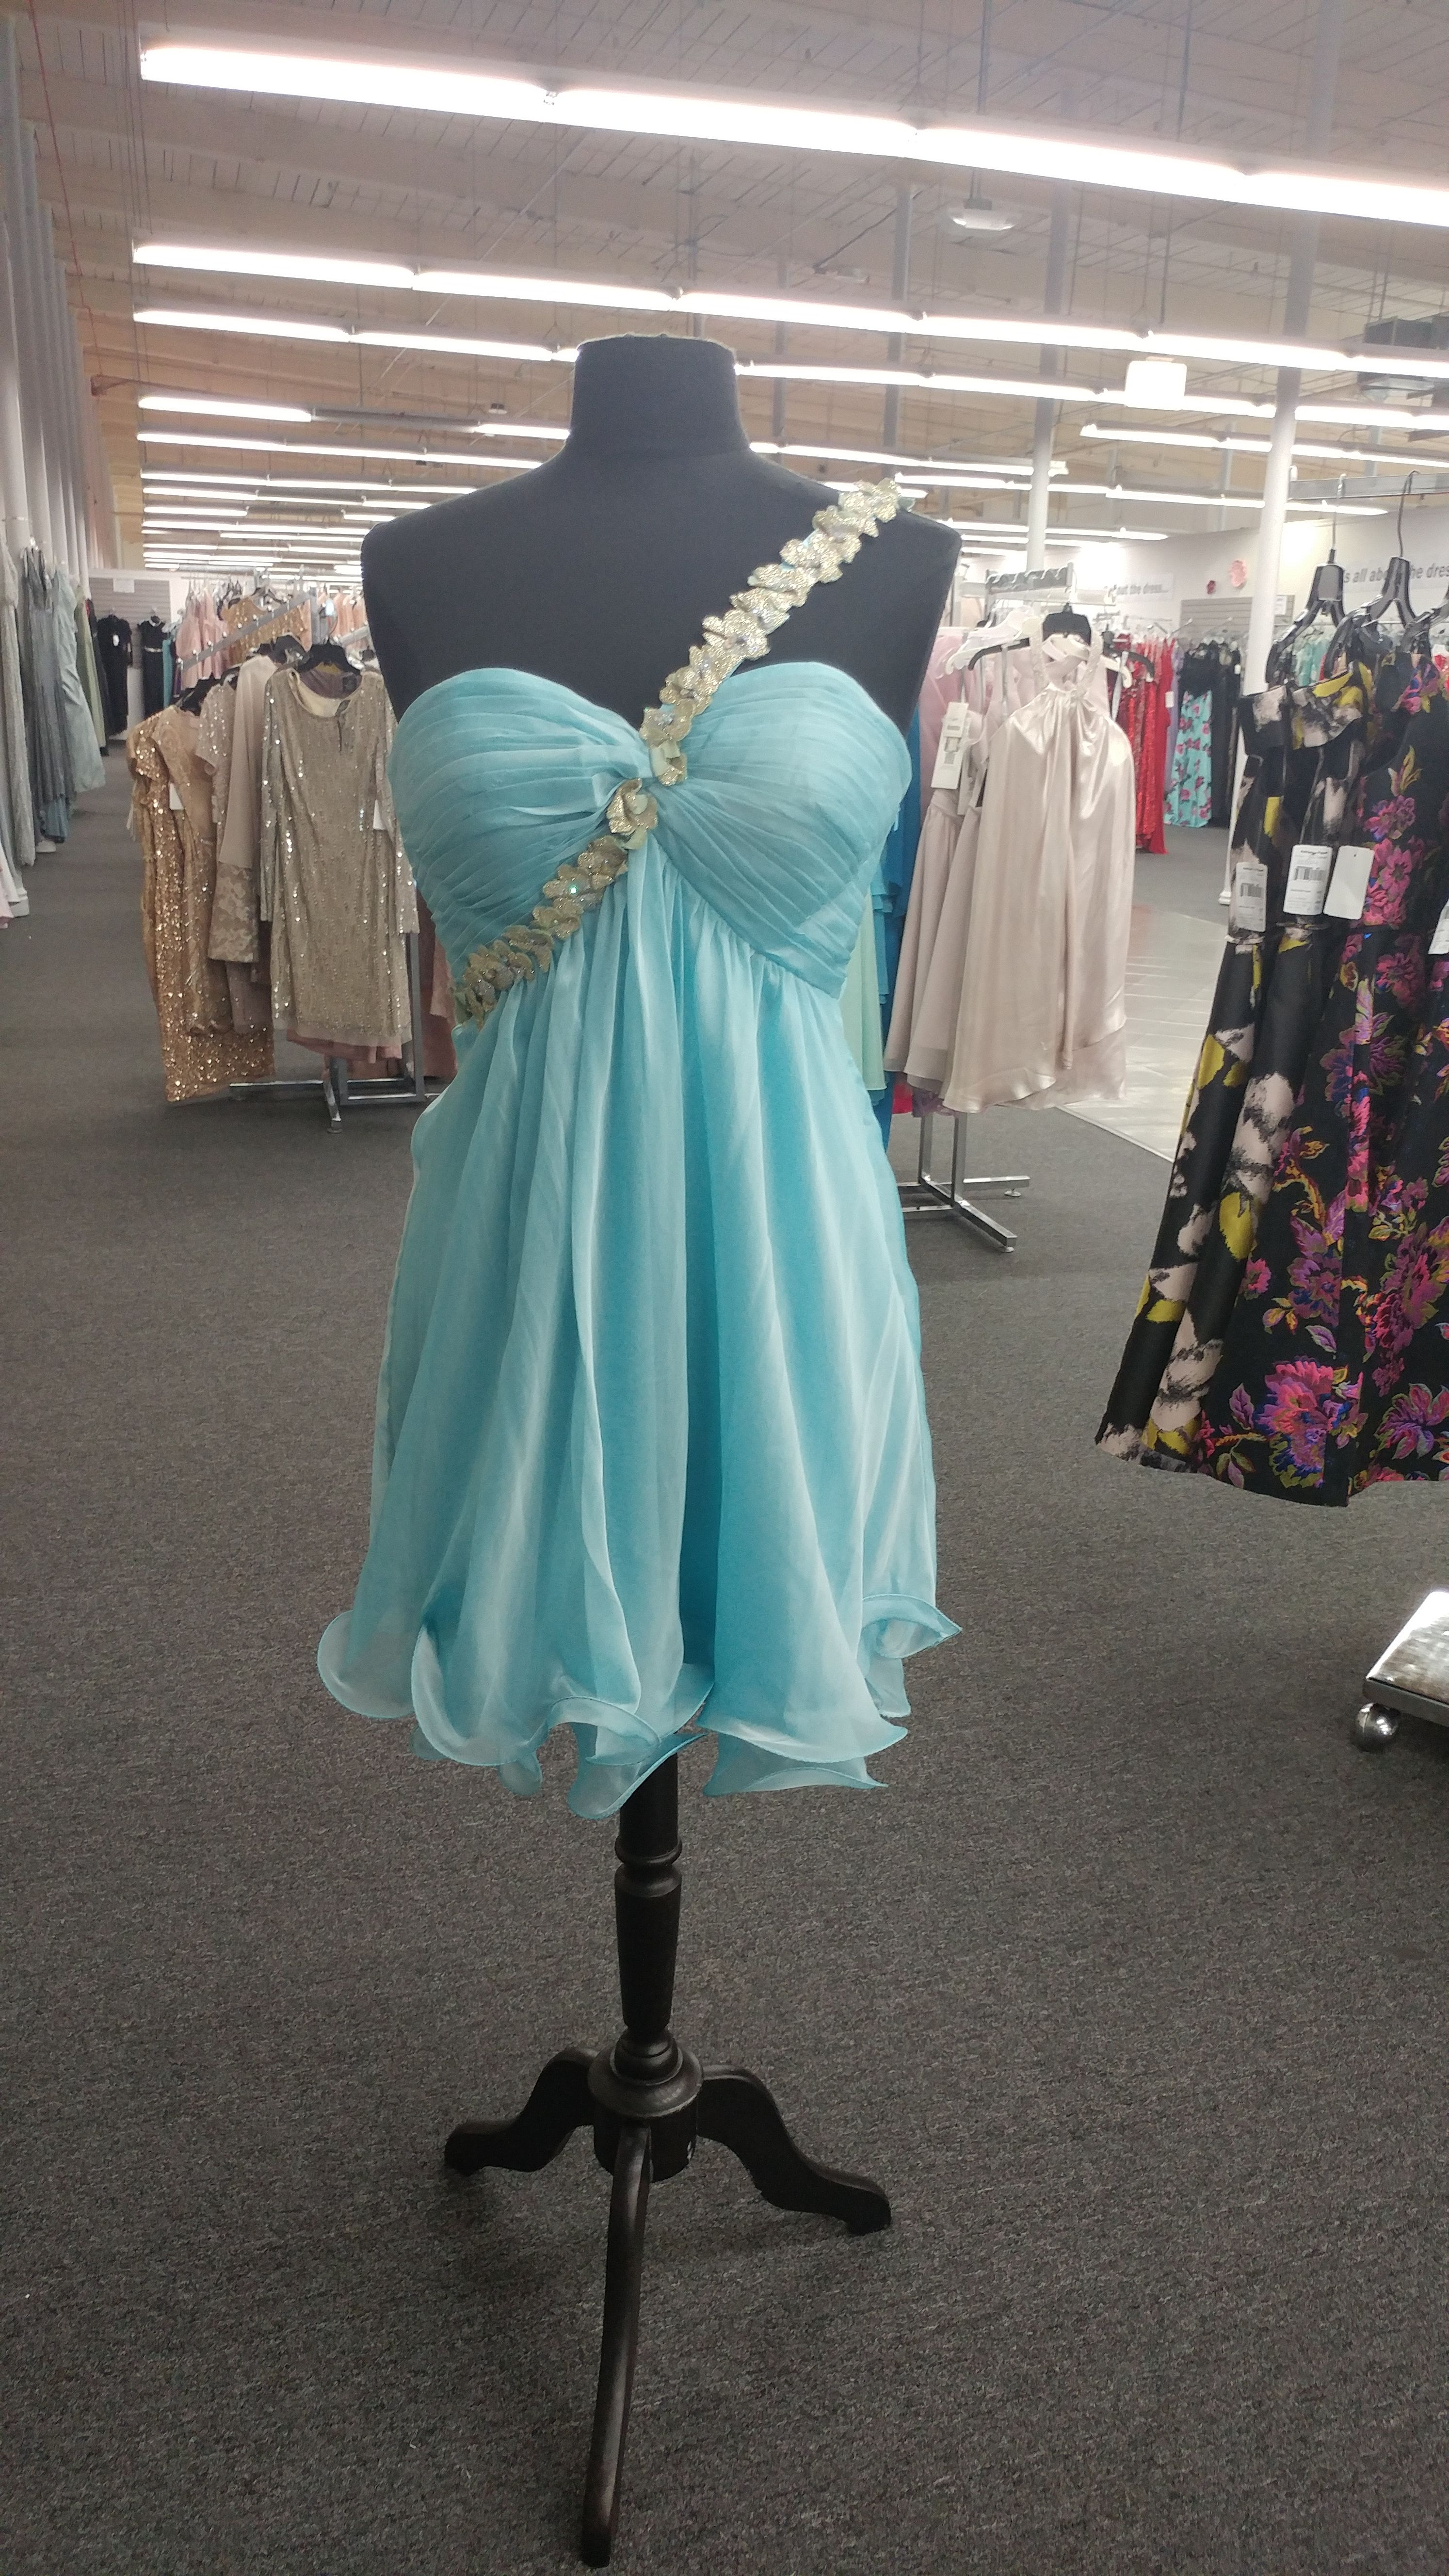 NEW ARRIVAL FROM LA FEMME | Party Dress Express | 657 Quarry Street ...